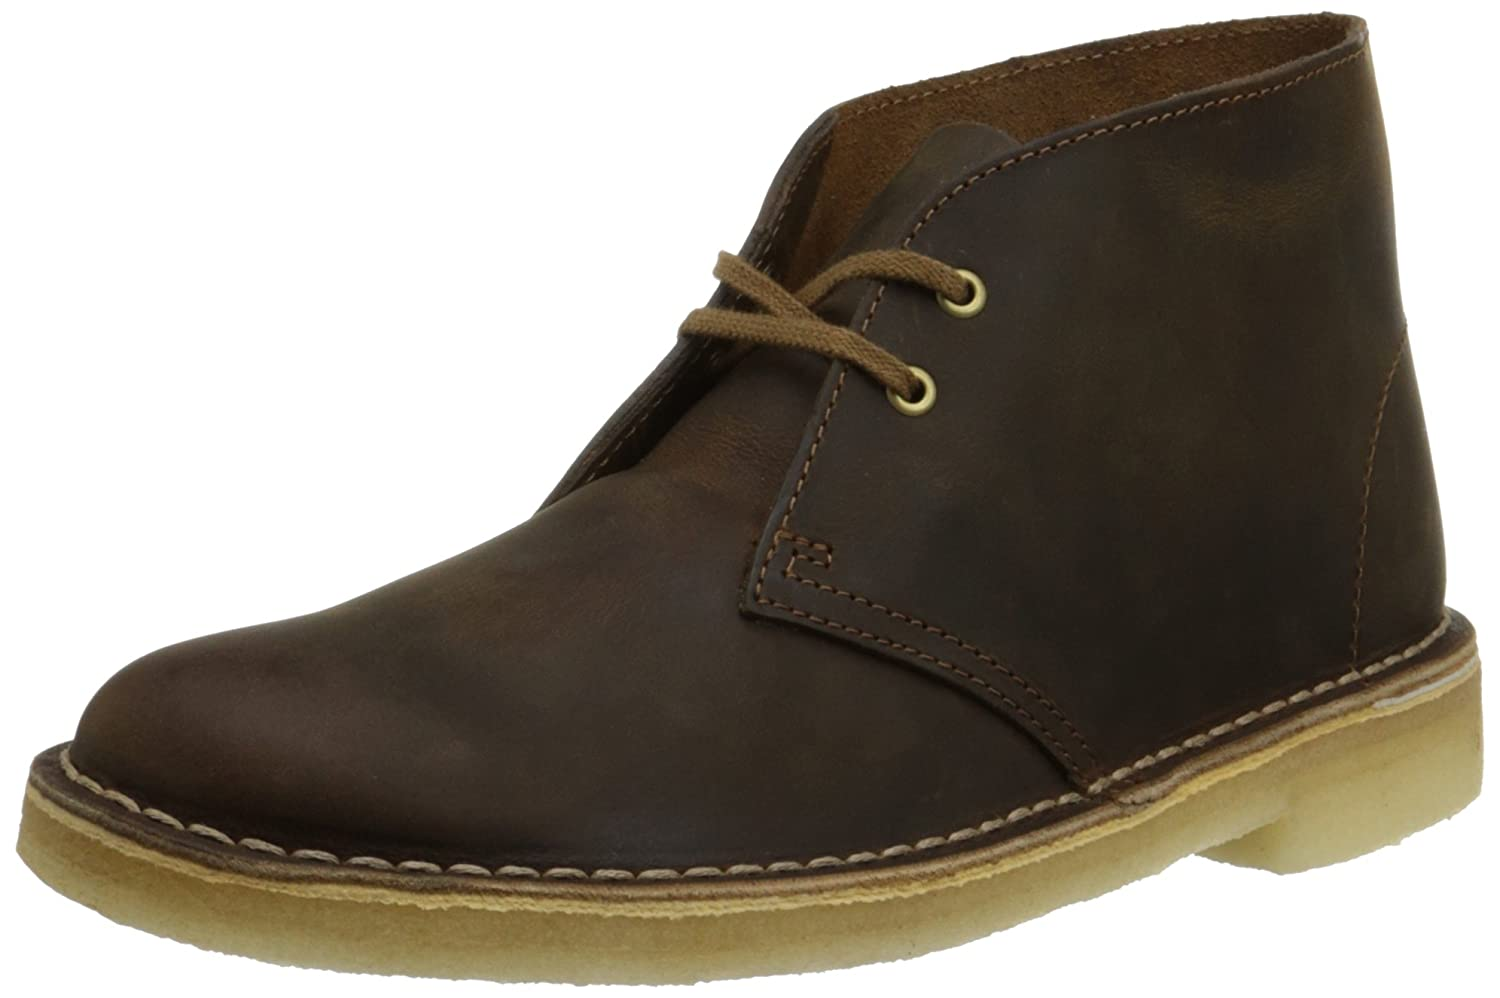 CLARKS Women's Desert Boot Ankle Bootie B00UCVQ3VC 5.5 B(M) US|Beeswax Leather